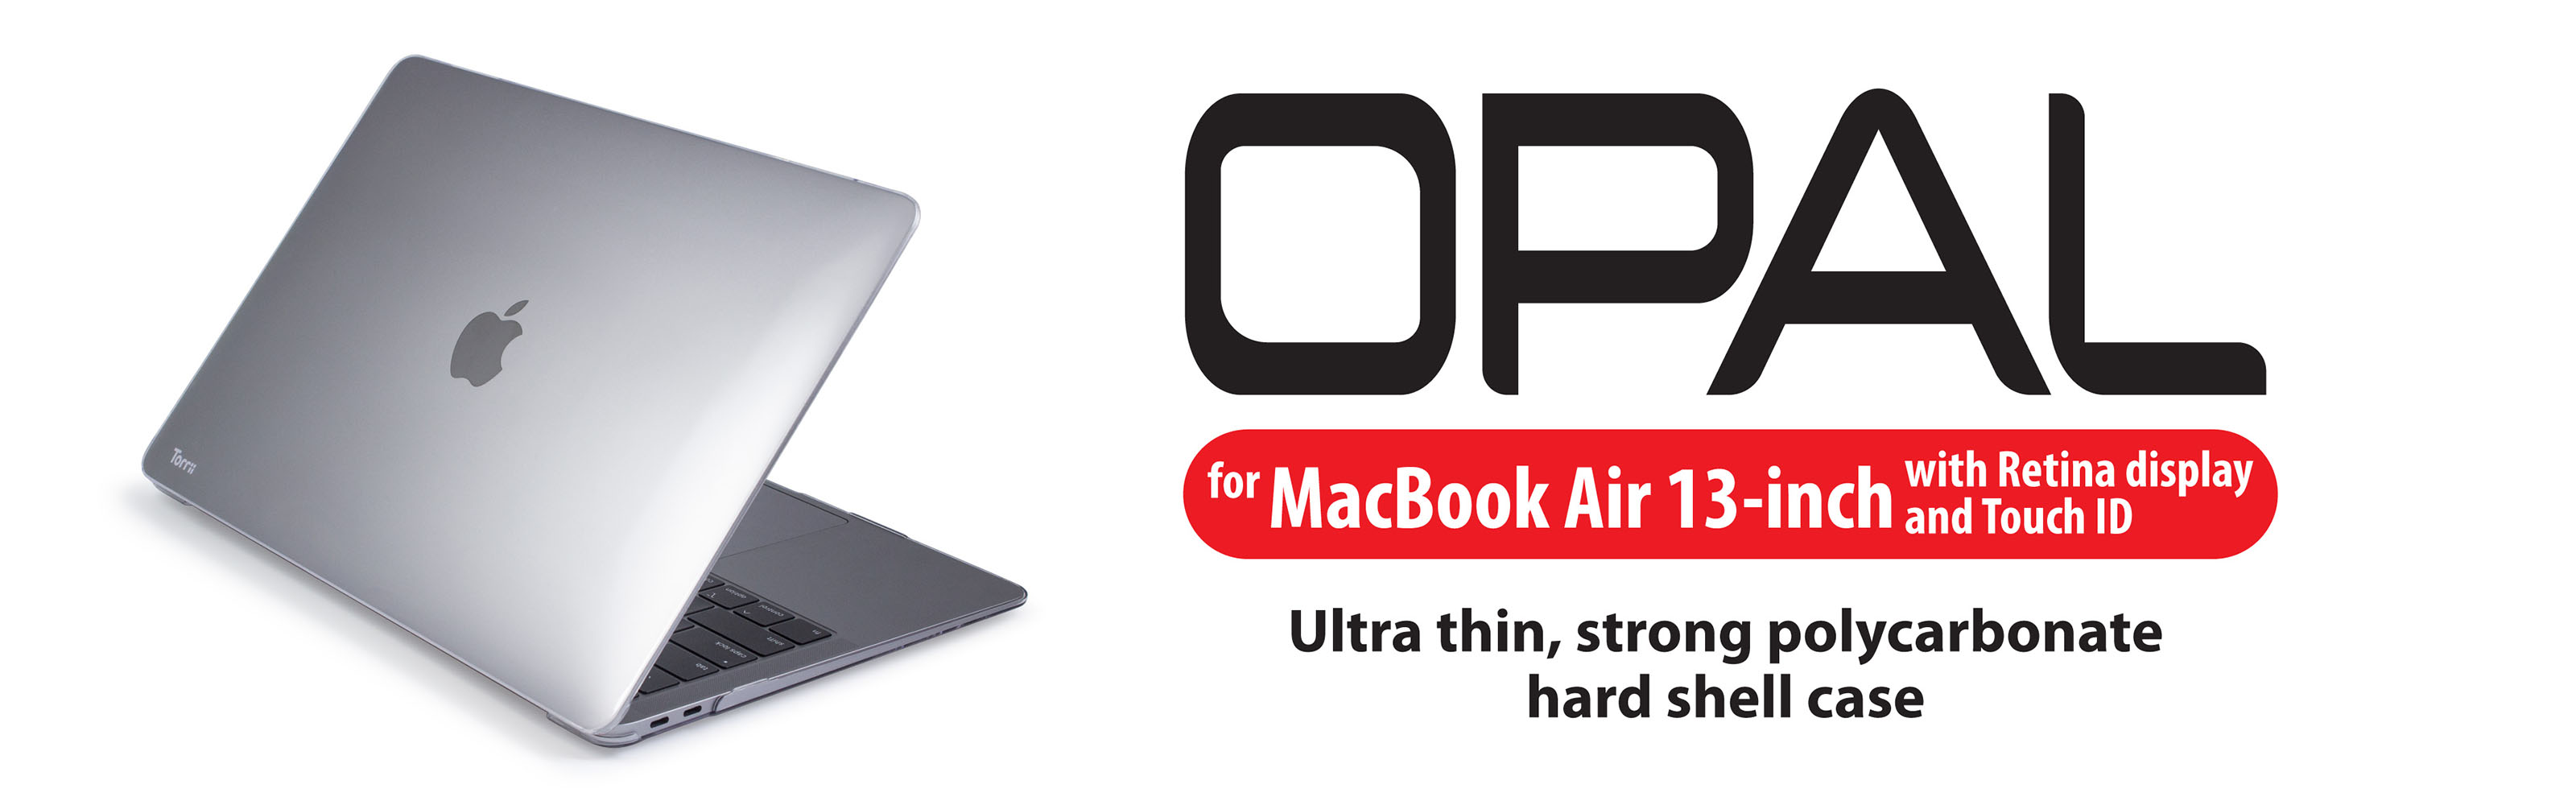 Torrii introduces OPAL for MacBook Air 13-inch